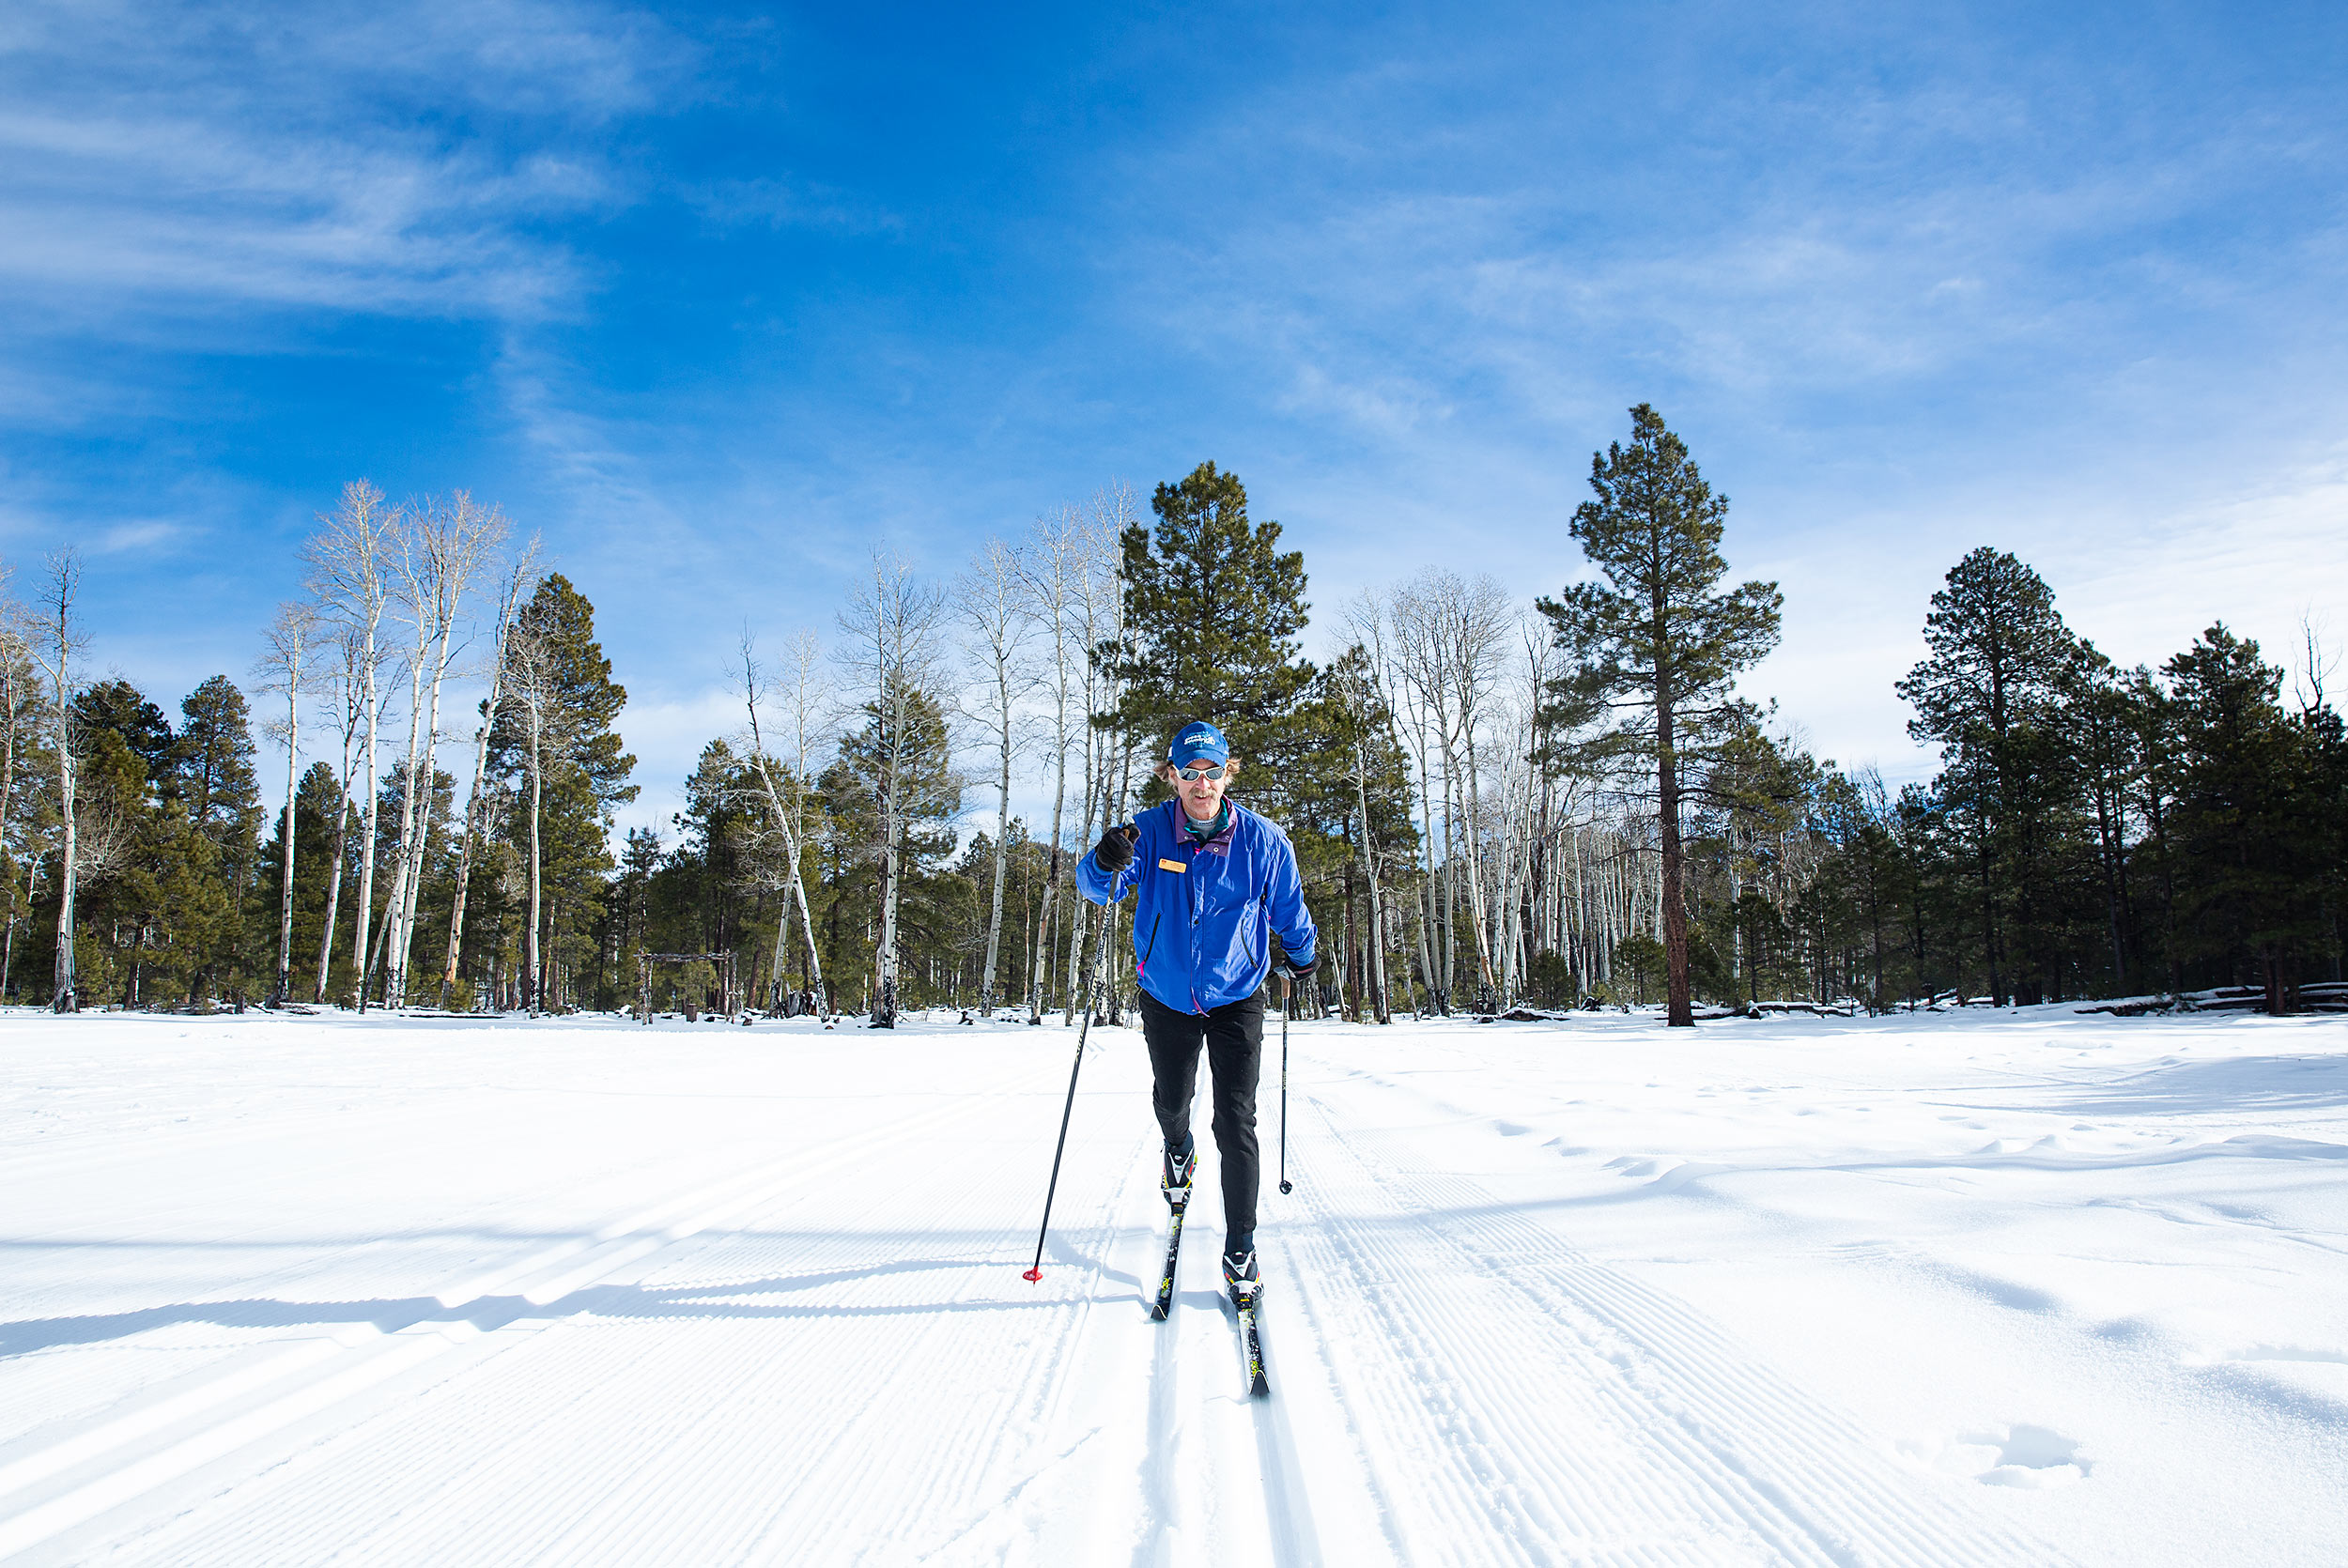 Cross country skiing - Steve Craft Photography - Phoenix Arizona Commercial Photographer